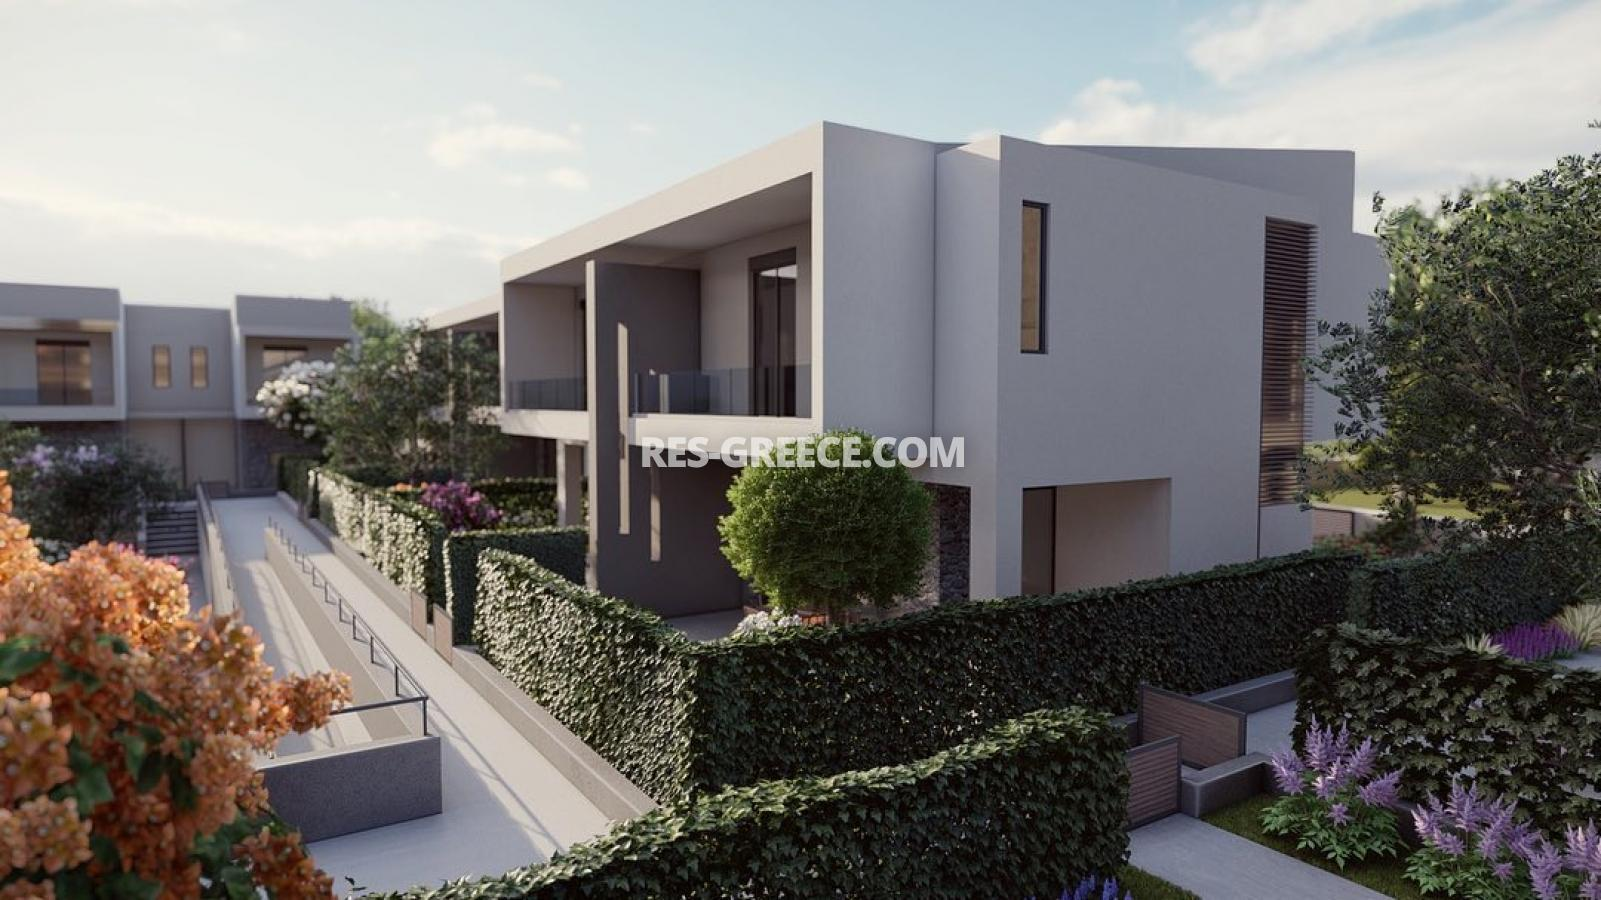 Anasa townhouses, Halkidiki-Sithonia, Greece - cottages in a new complex with the pool - Photo 1